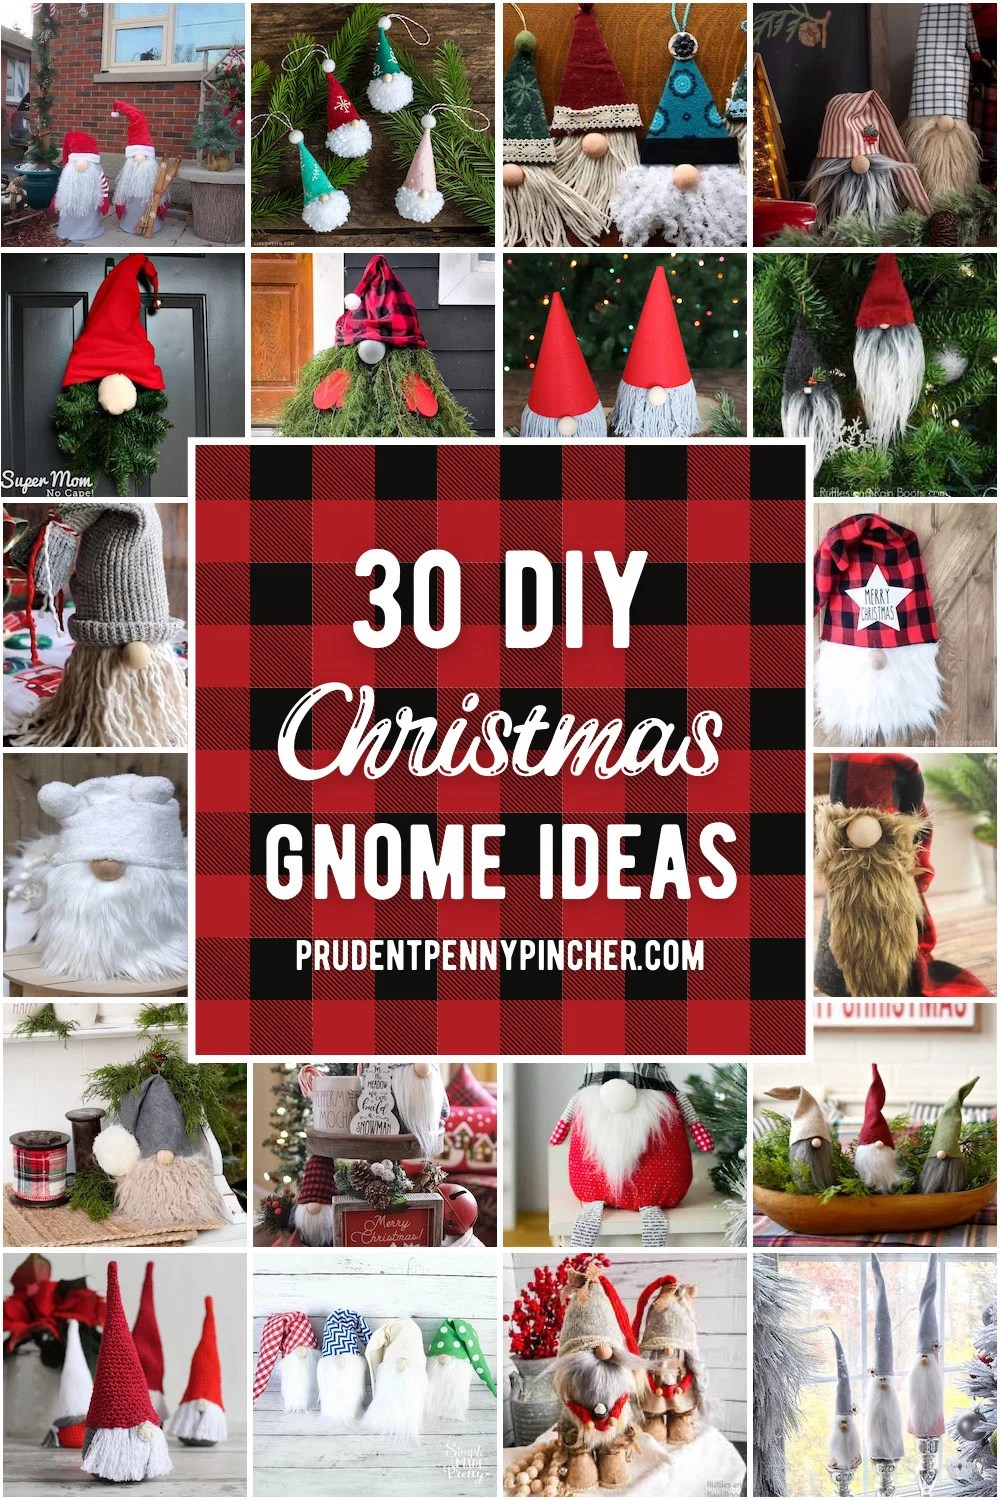 30 Diy Gnome Christmas Decor Ideas Prudent Penny Pincher